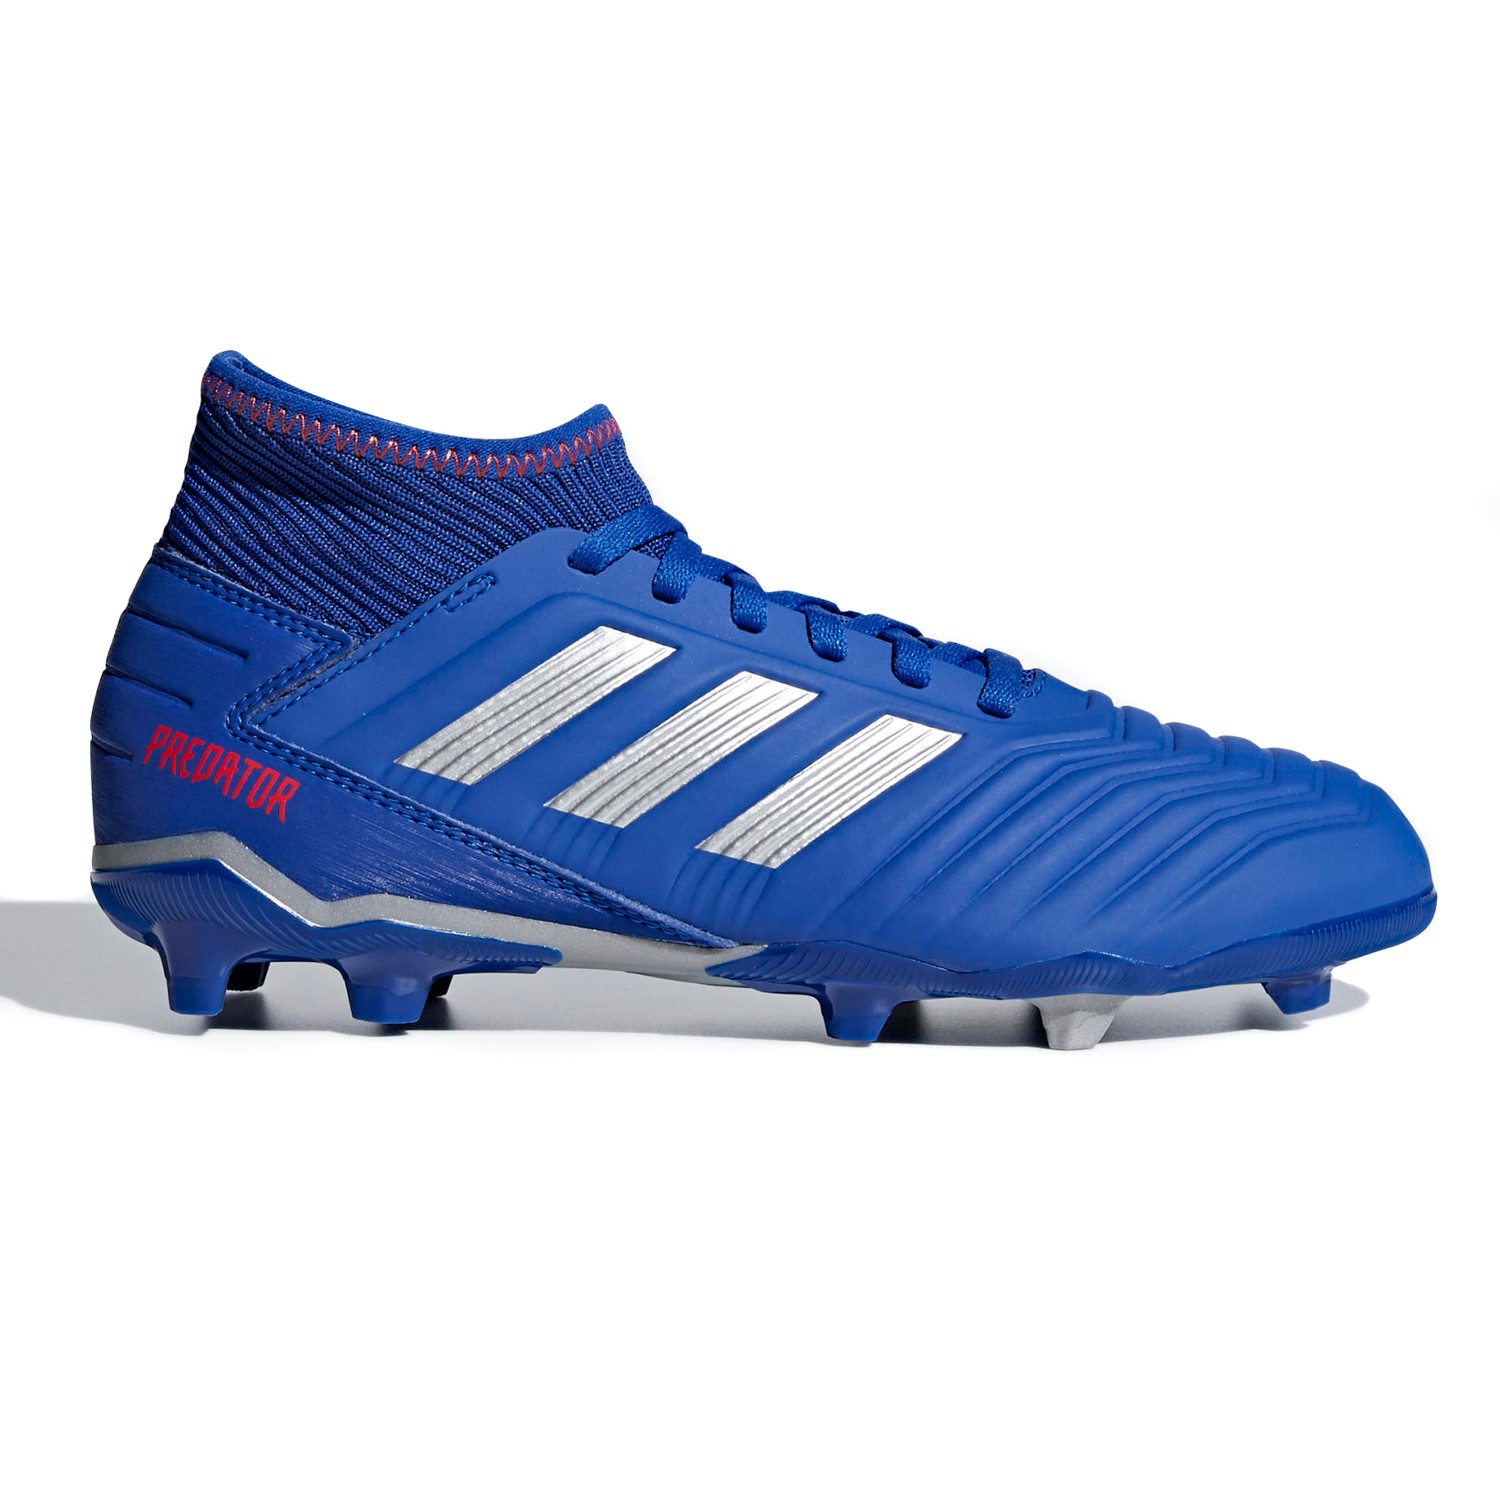 4a3be60cd58 Adidas Predator 19.3 FG - Kids Boys Football Boots - Blue Silver Active Red